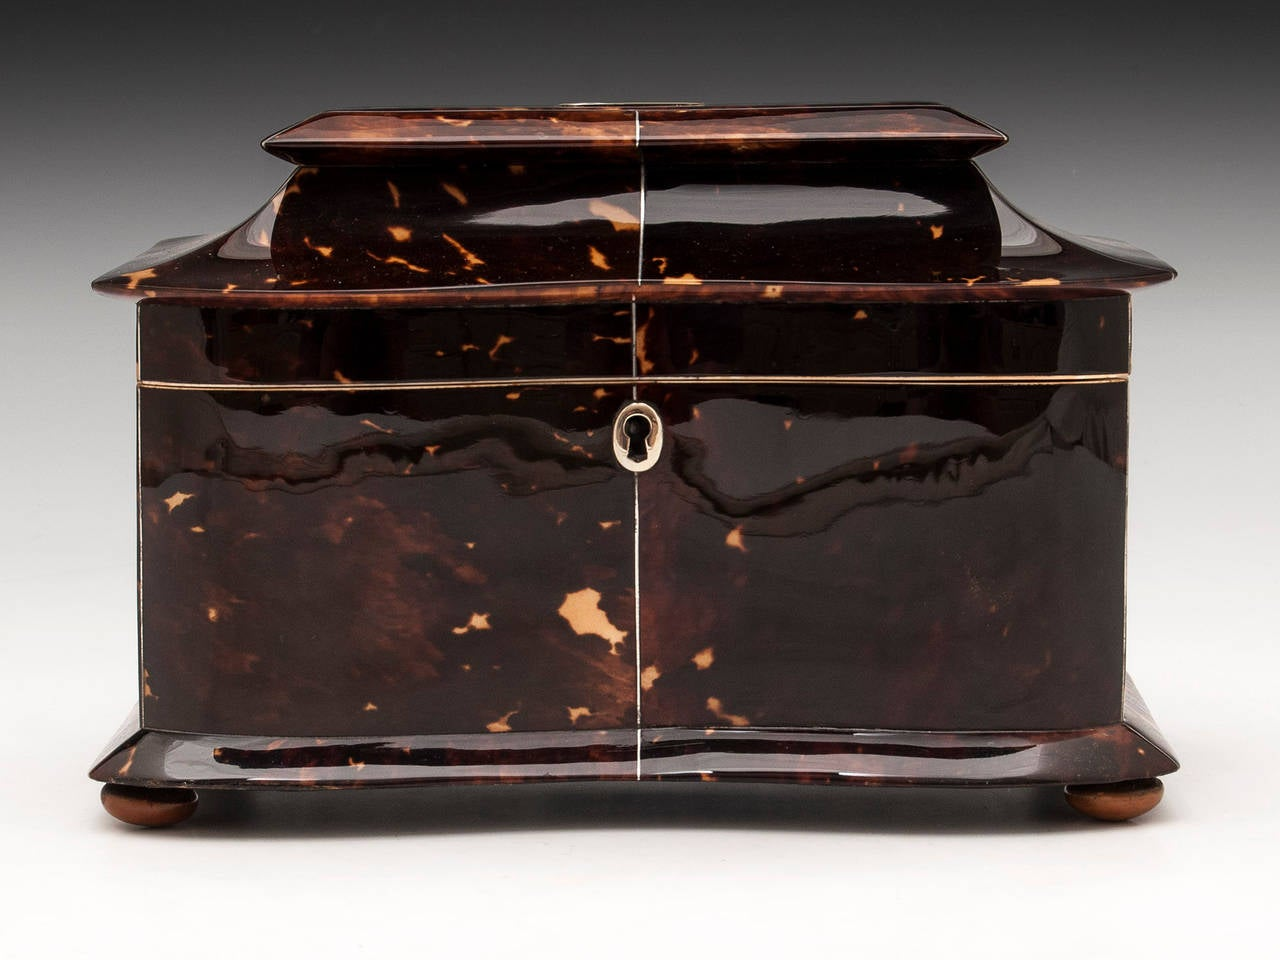 British Regency Tortoiseshell Tea Caddy For Sale